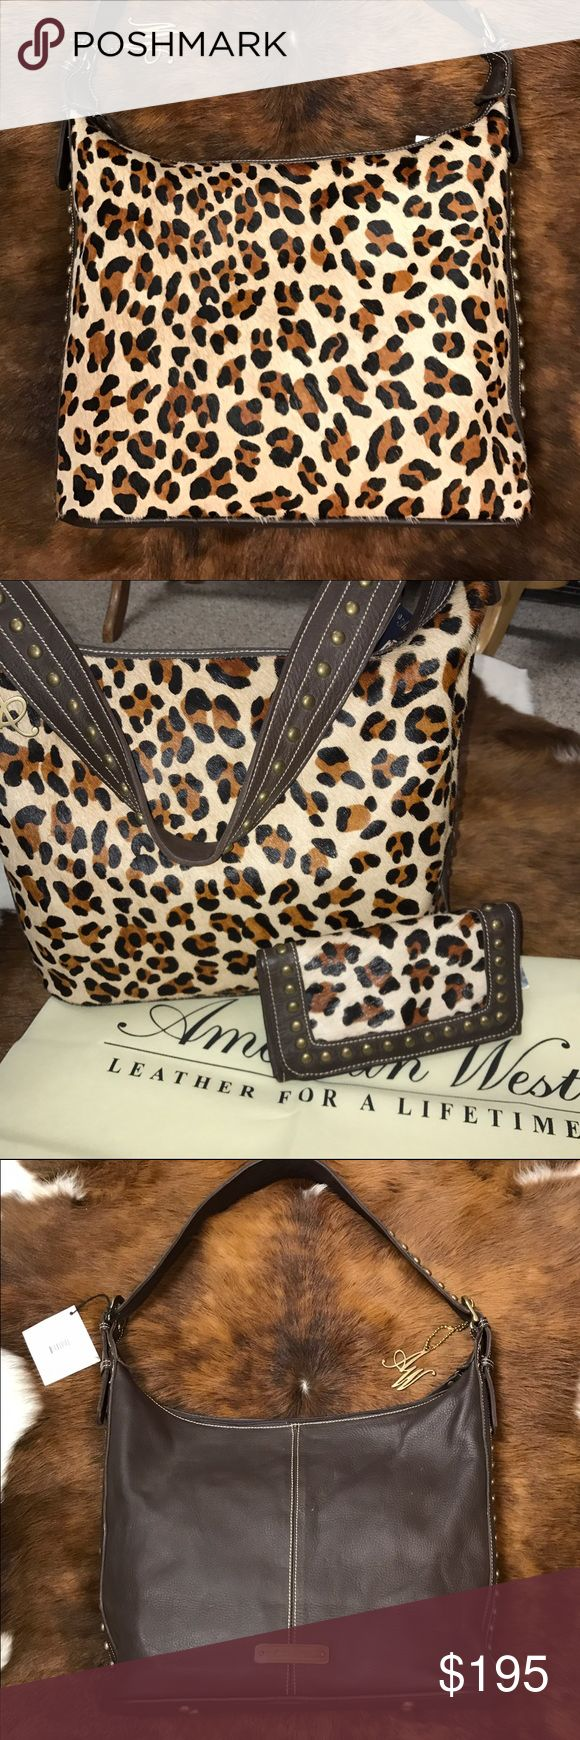 American West Leopard Print Bag Beautiful purse by American West!  Full leather with gold tone accents. Hand made, quality bag that will last for years!!  Fully lined with added compartments.  Matching wallet available separately. American West Bags Shoulder Bags